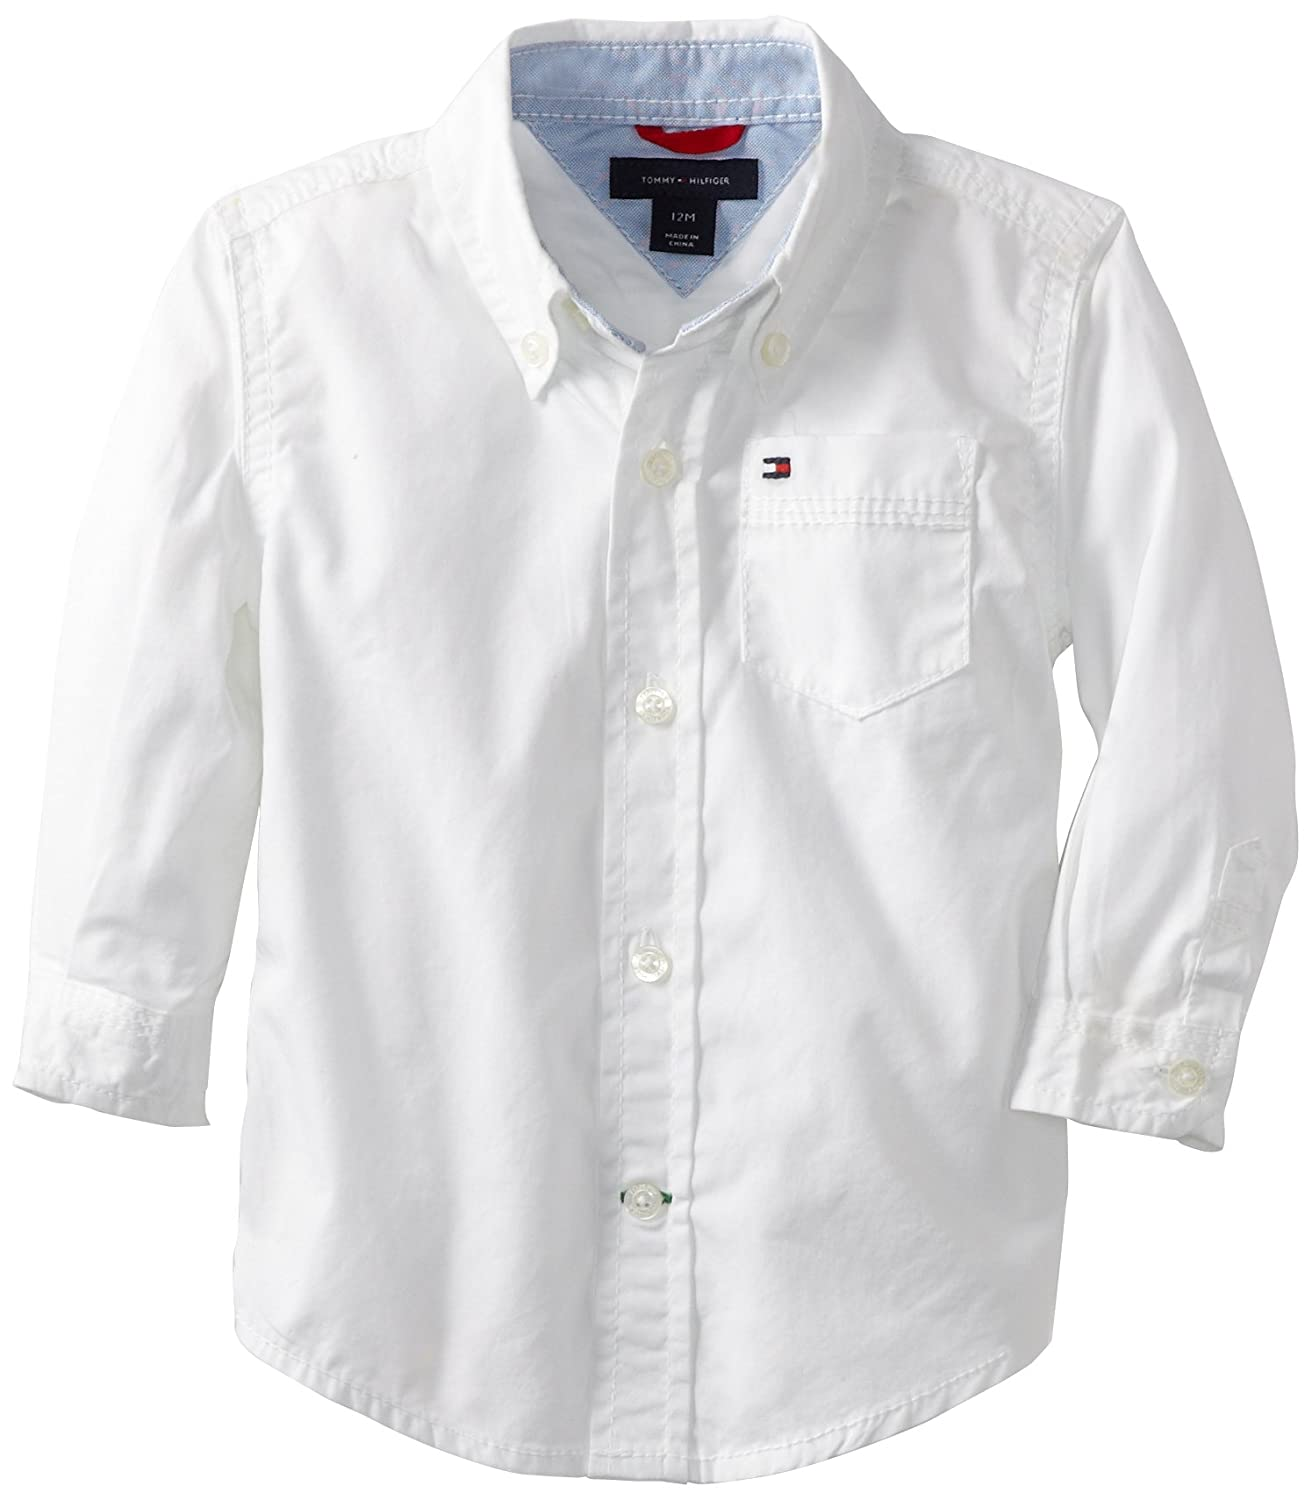 Tommy Hilfiger Baby Boys' Classic Shirt Tommy Hilfiger Baby Apparel